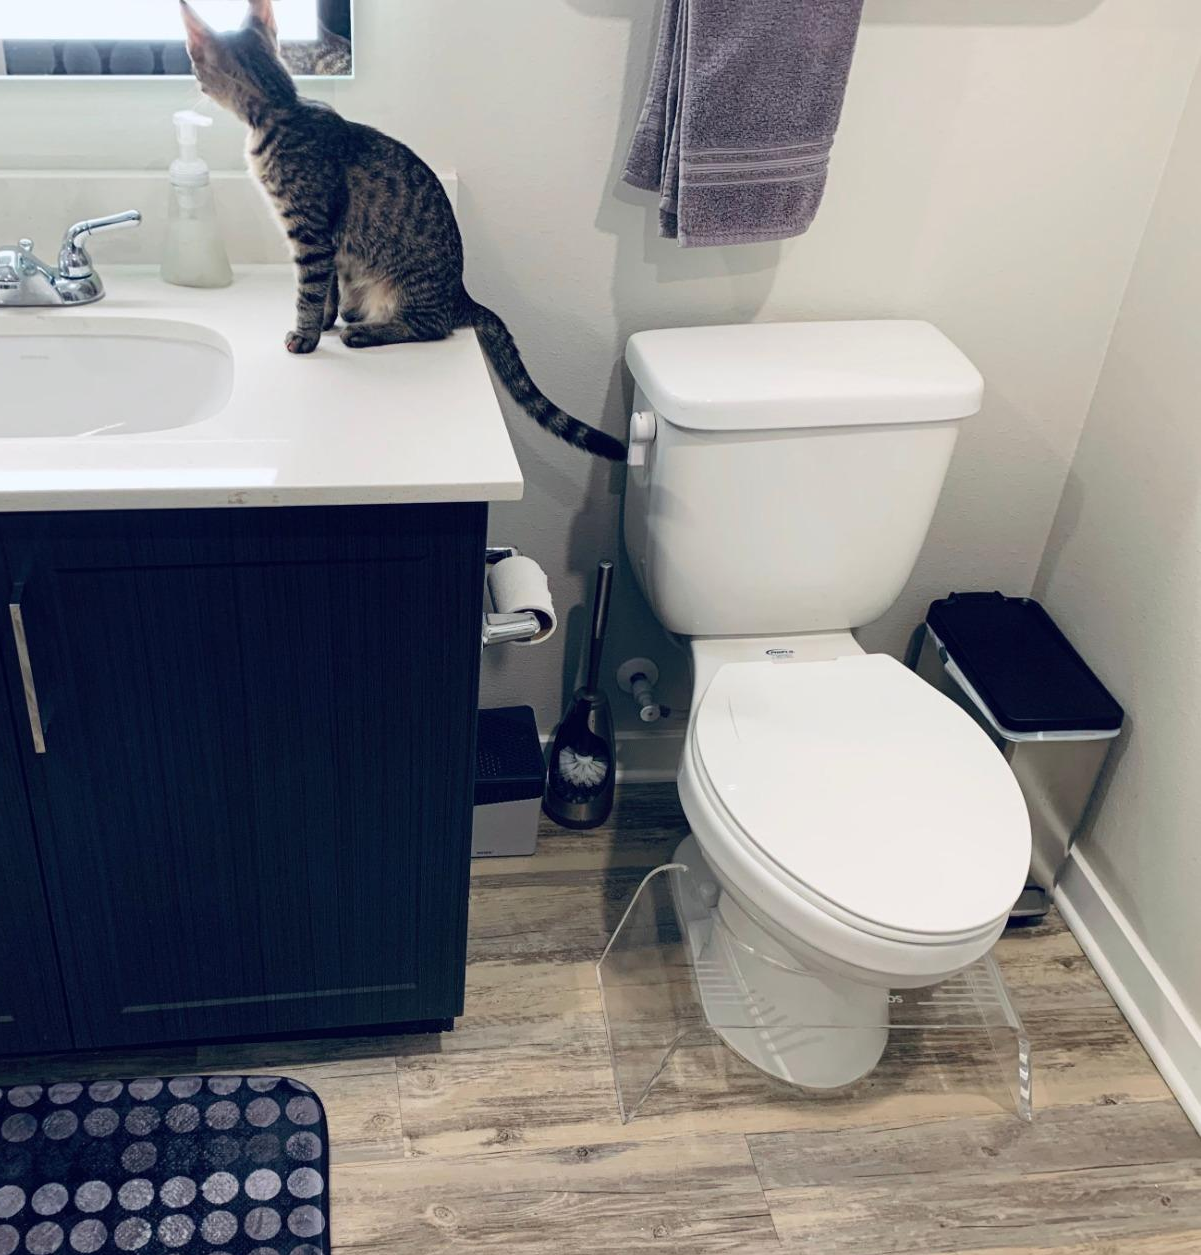 Reviewer photo of the clear acrylic squatty potty under the toilet